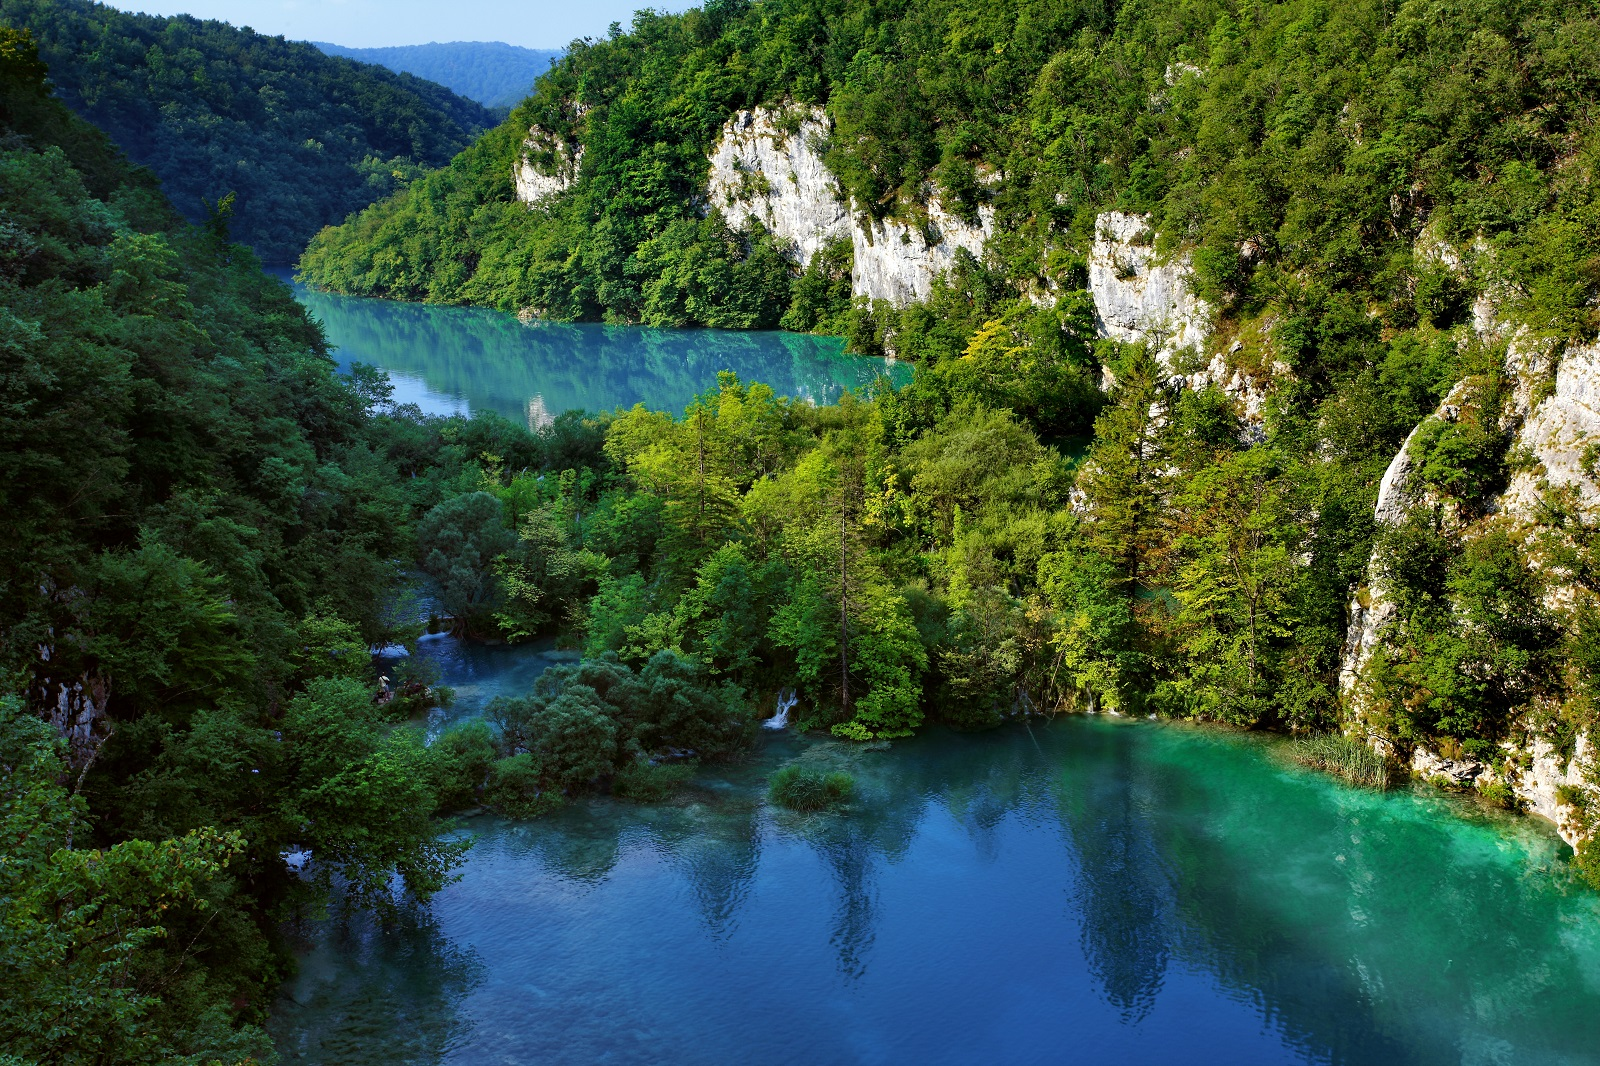 National Park Plitvice, National park, excursions, activity trips, walking, Croatia